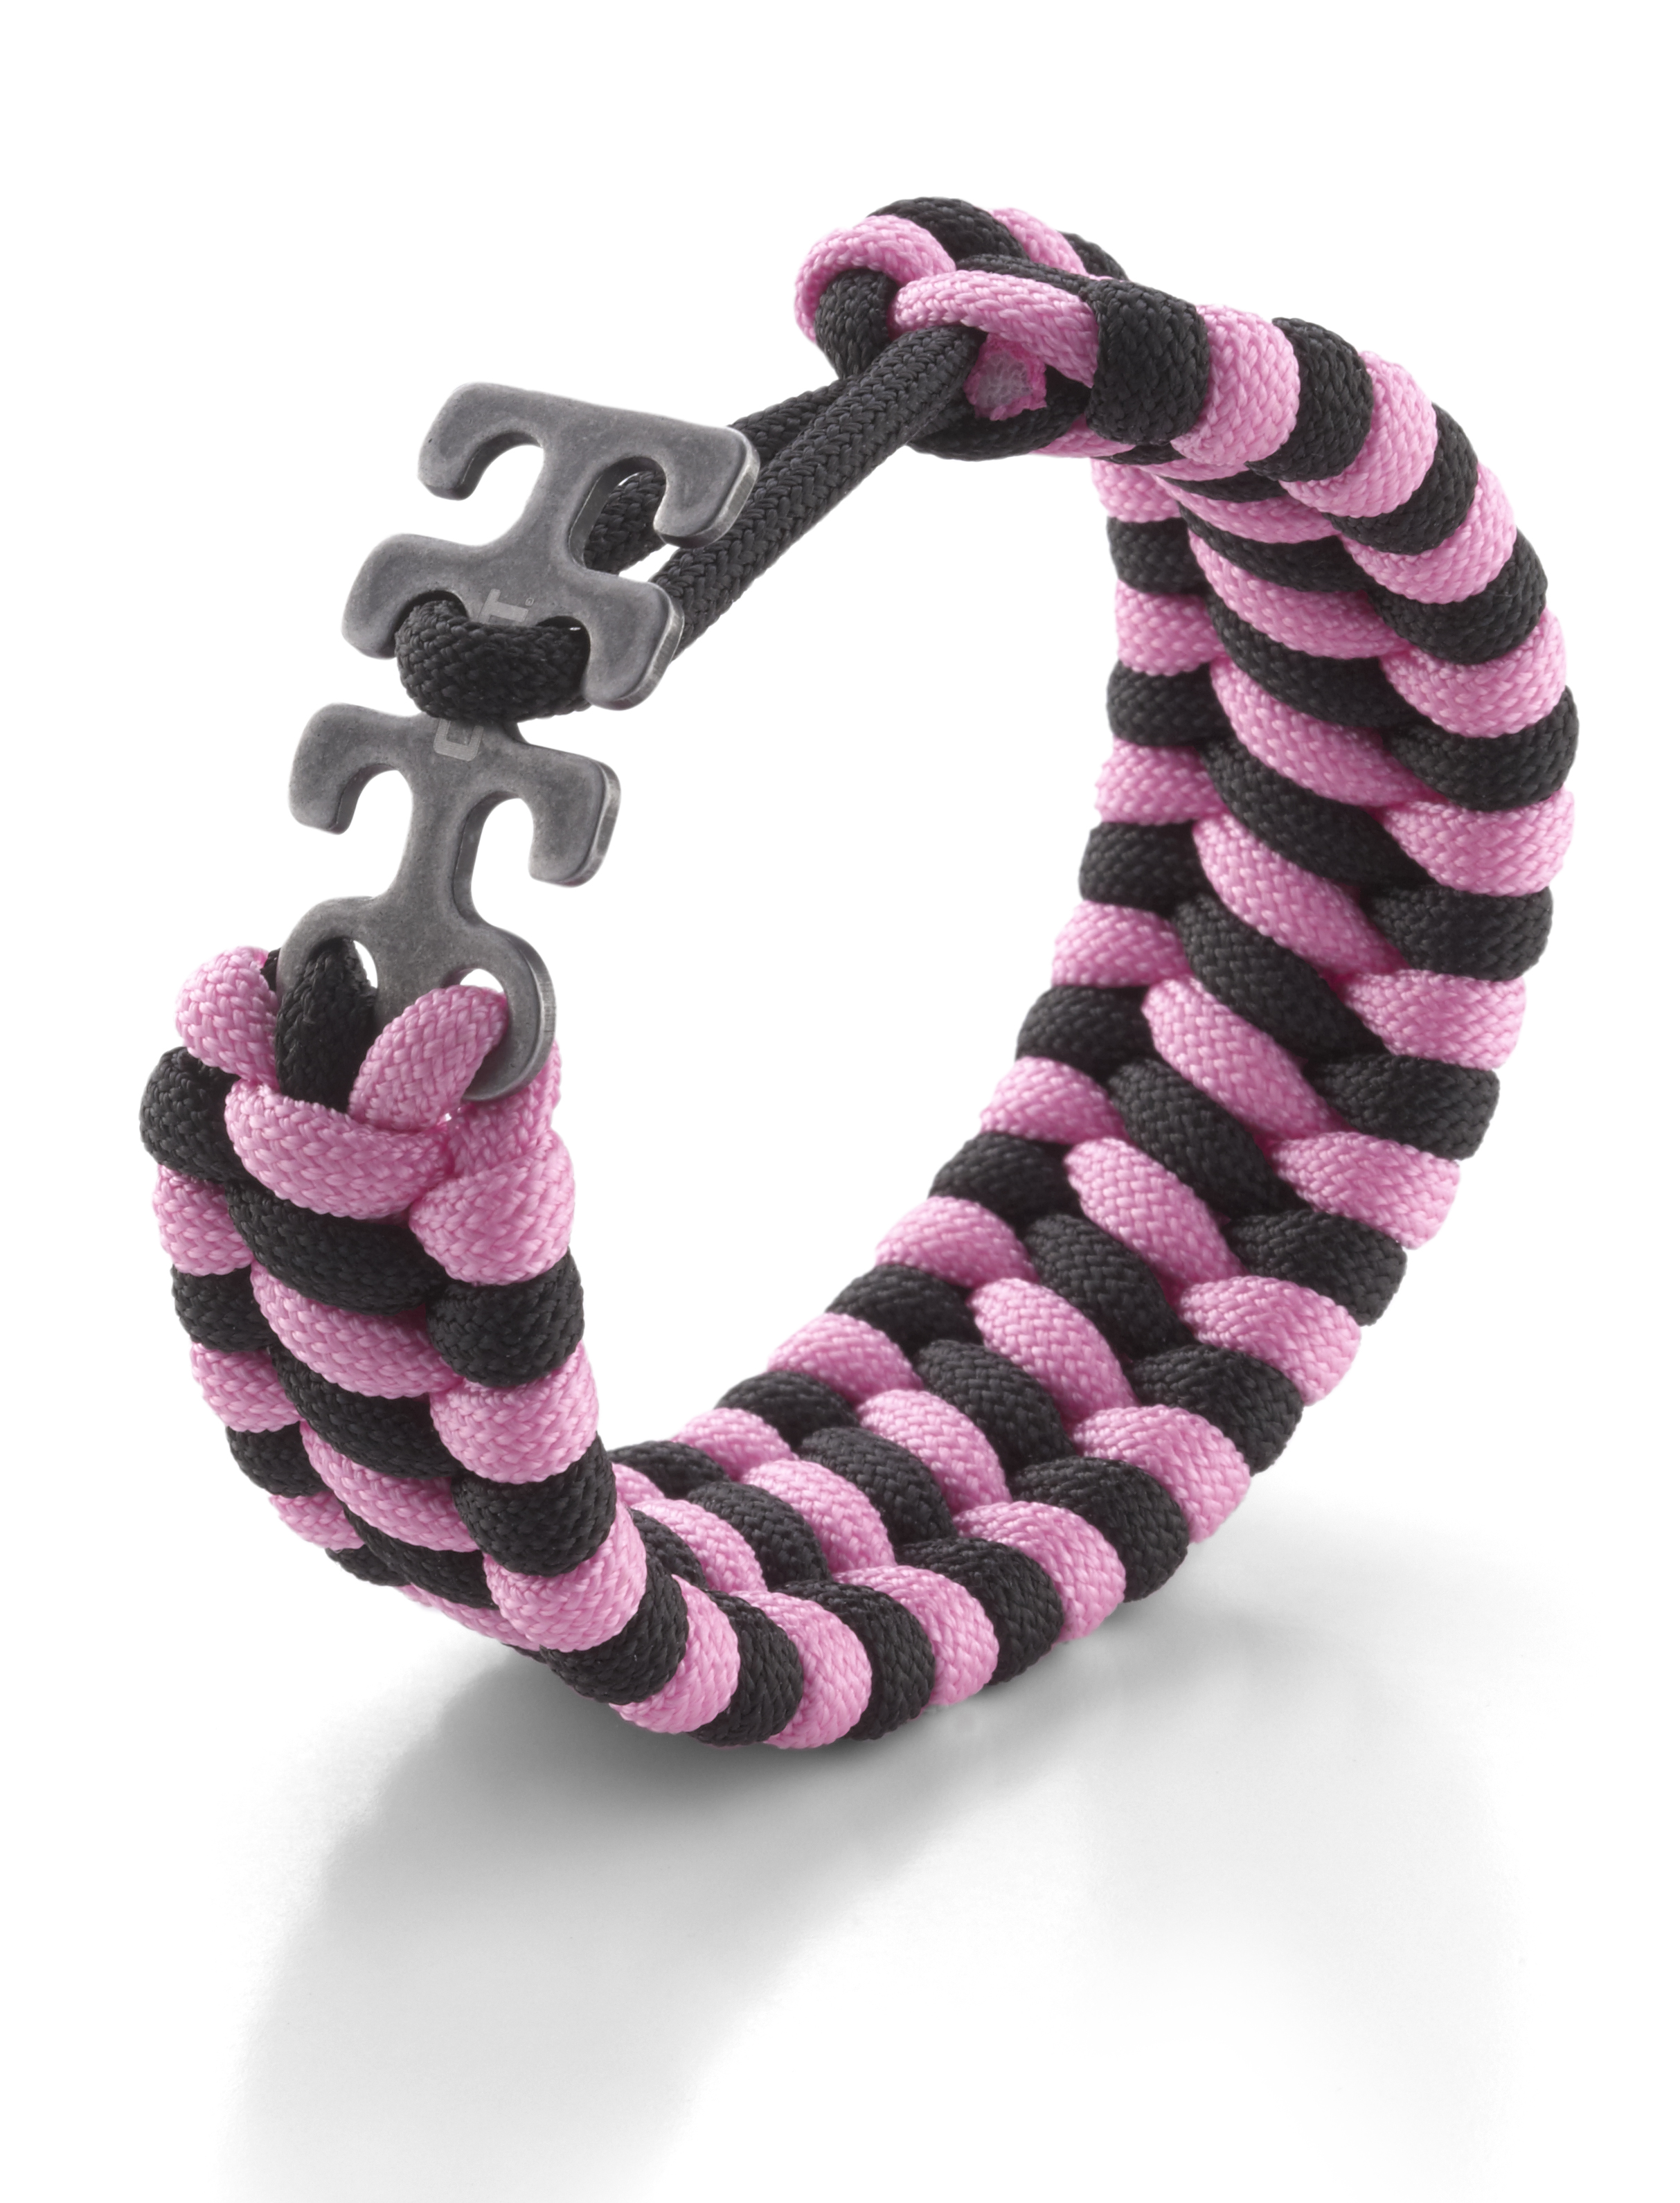 9400PK - CRKT Adjustable Paracord Bracelet Pink/Black